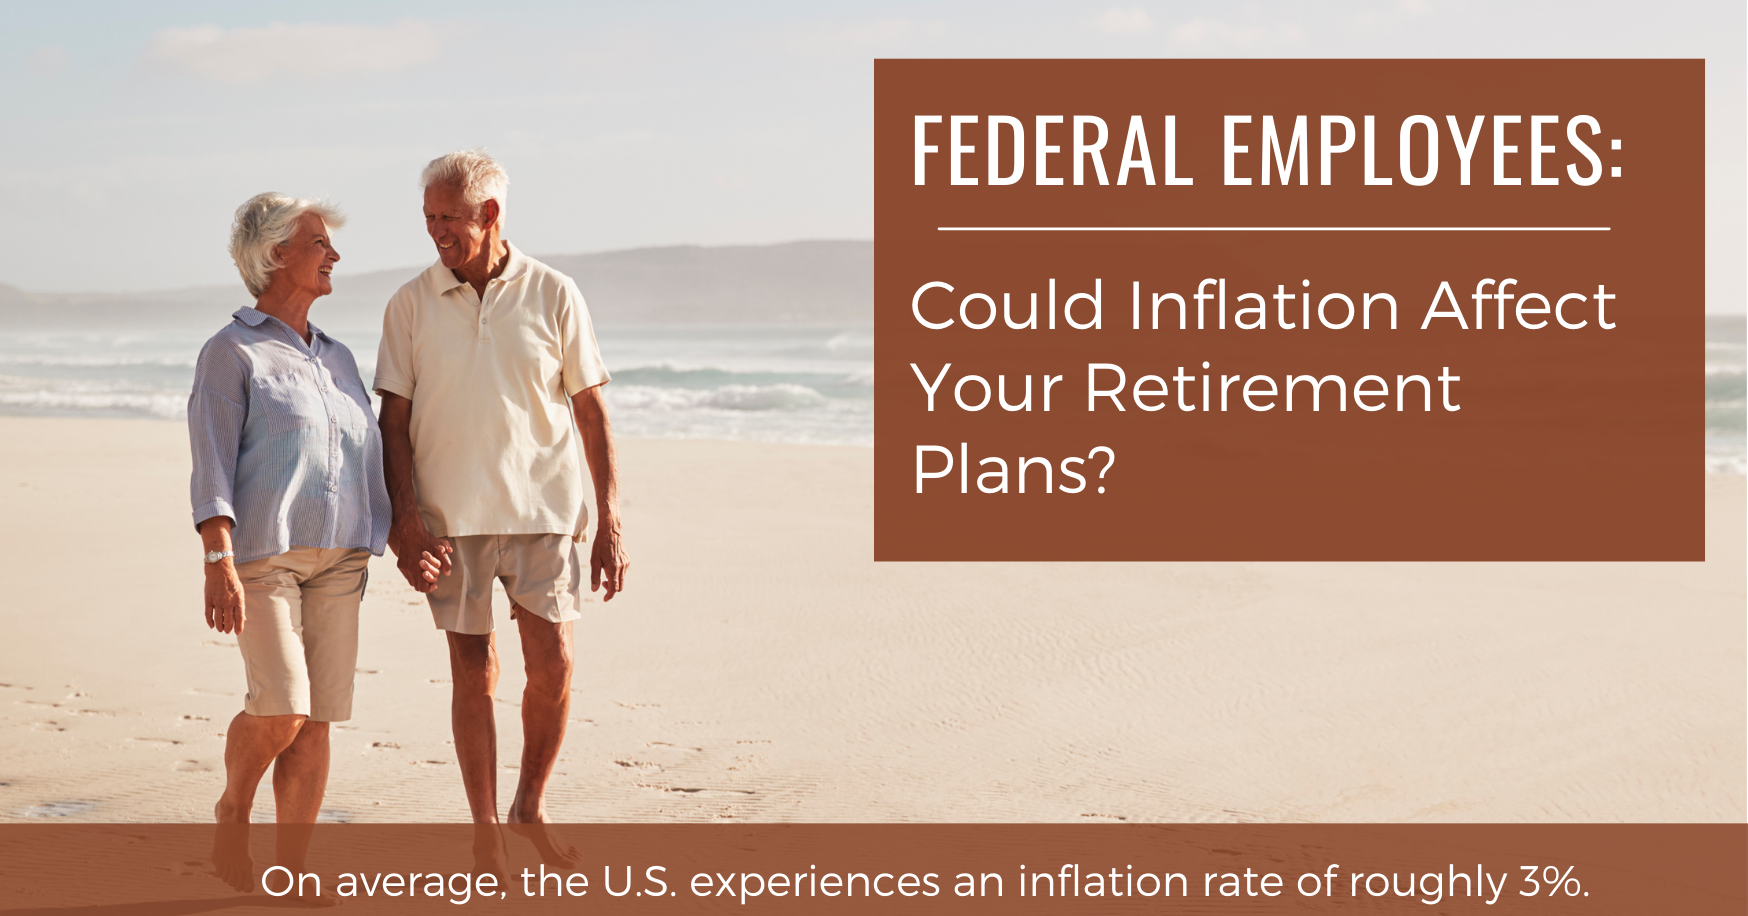 Could Inflation Affect Your Retirement Plans as a Federal Employee? Thumbnail